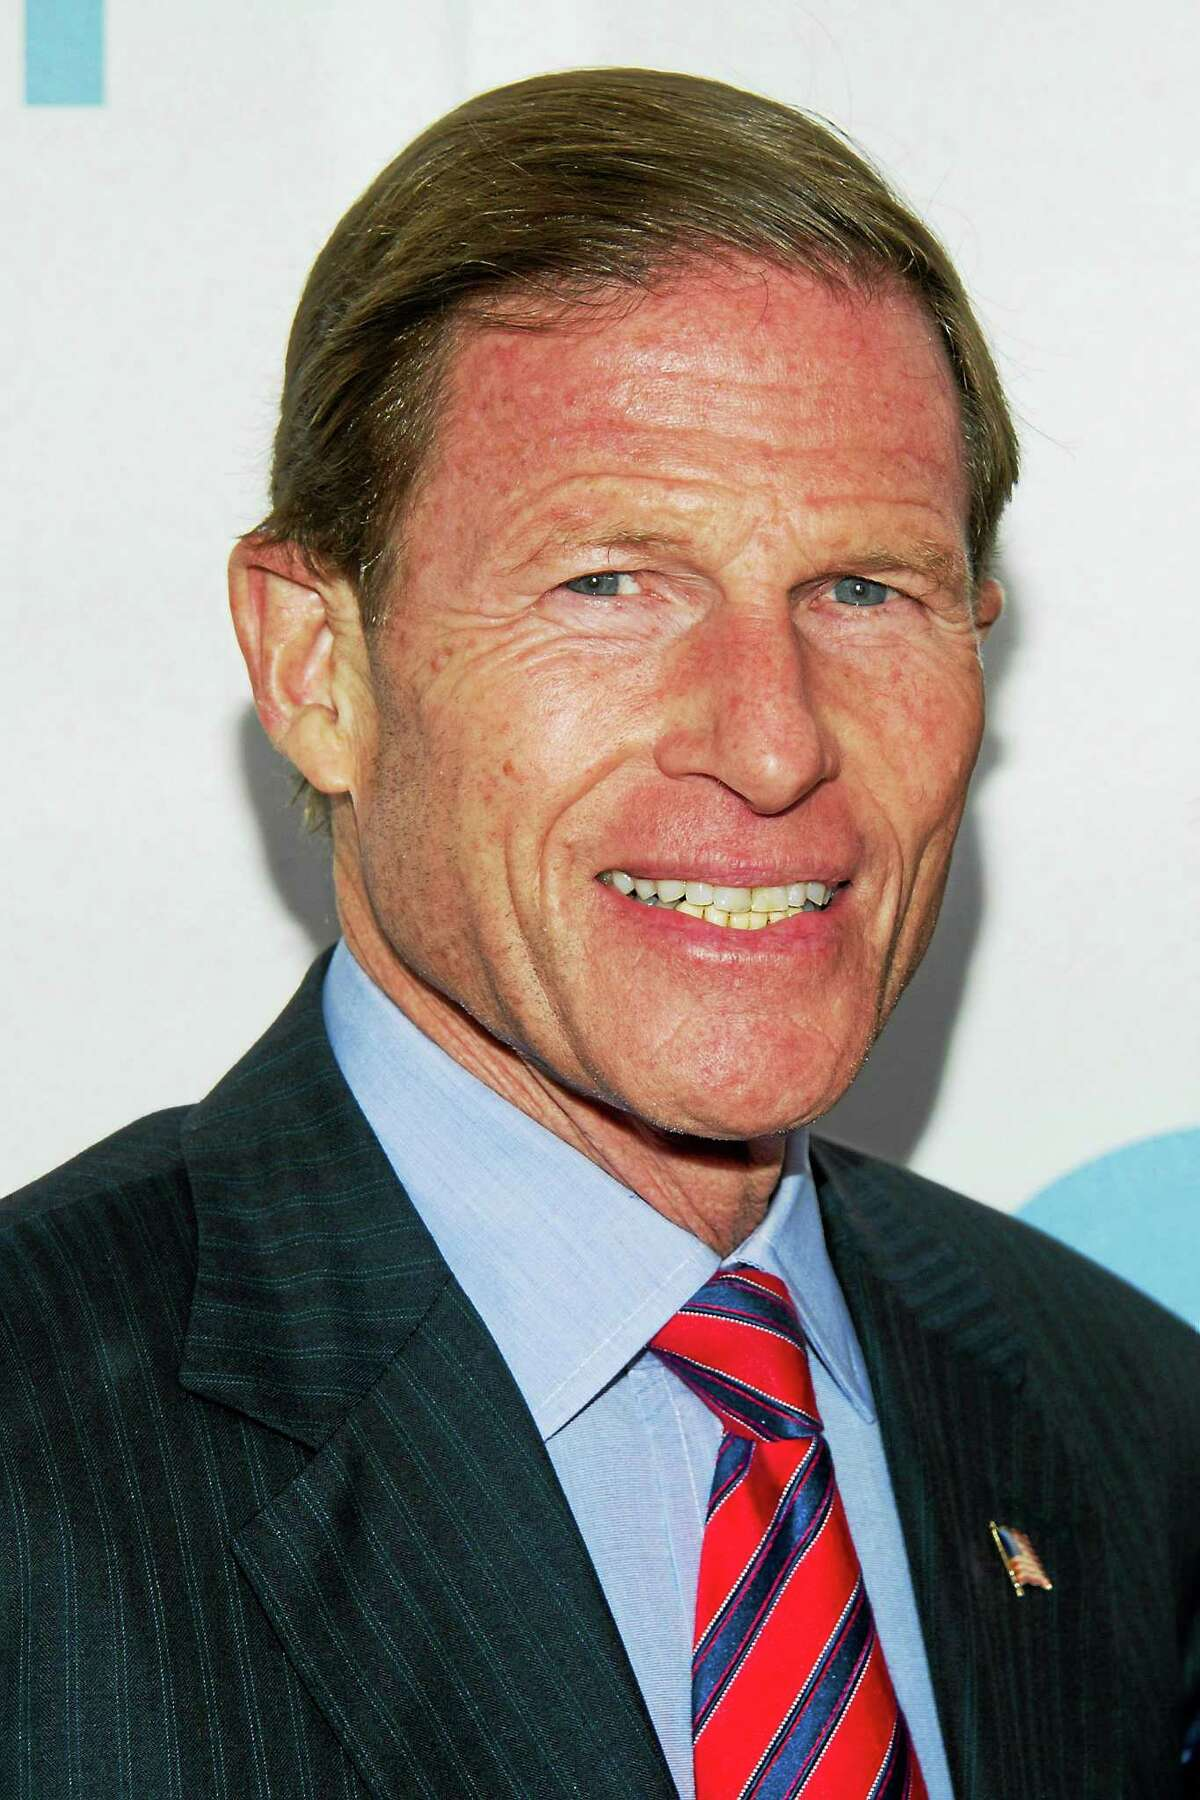 (Photo by Charles Sykes/Invision/AP) Senator Richard Blumenthal arrives at the 6th Annual Stand Up For Heroes benefit concert for injured service members and veterans on Nov. 8, 2012 in New York.